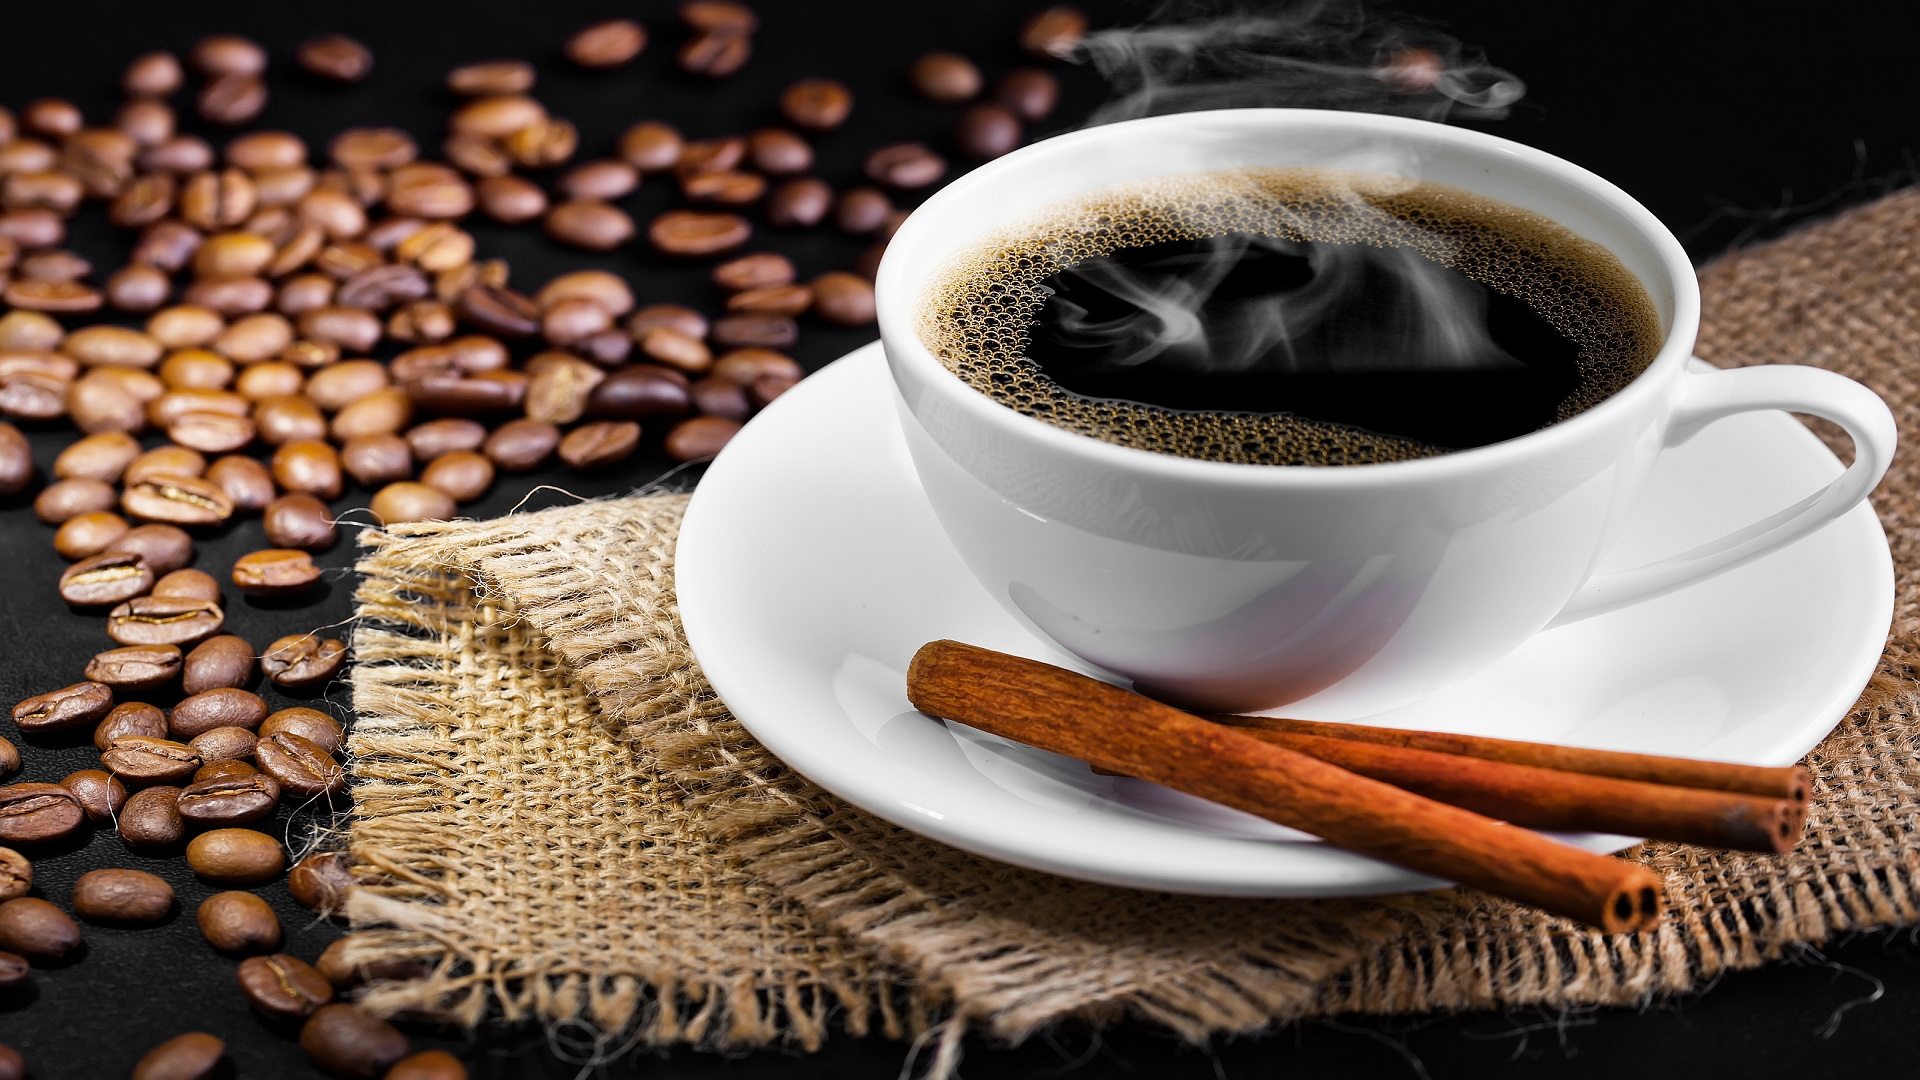 black-coffee-cinnamon-free-hd-wallpapers